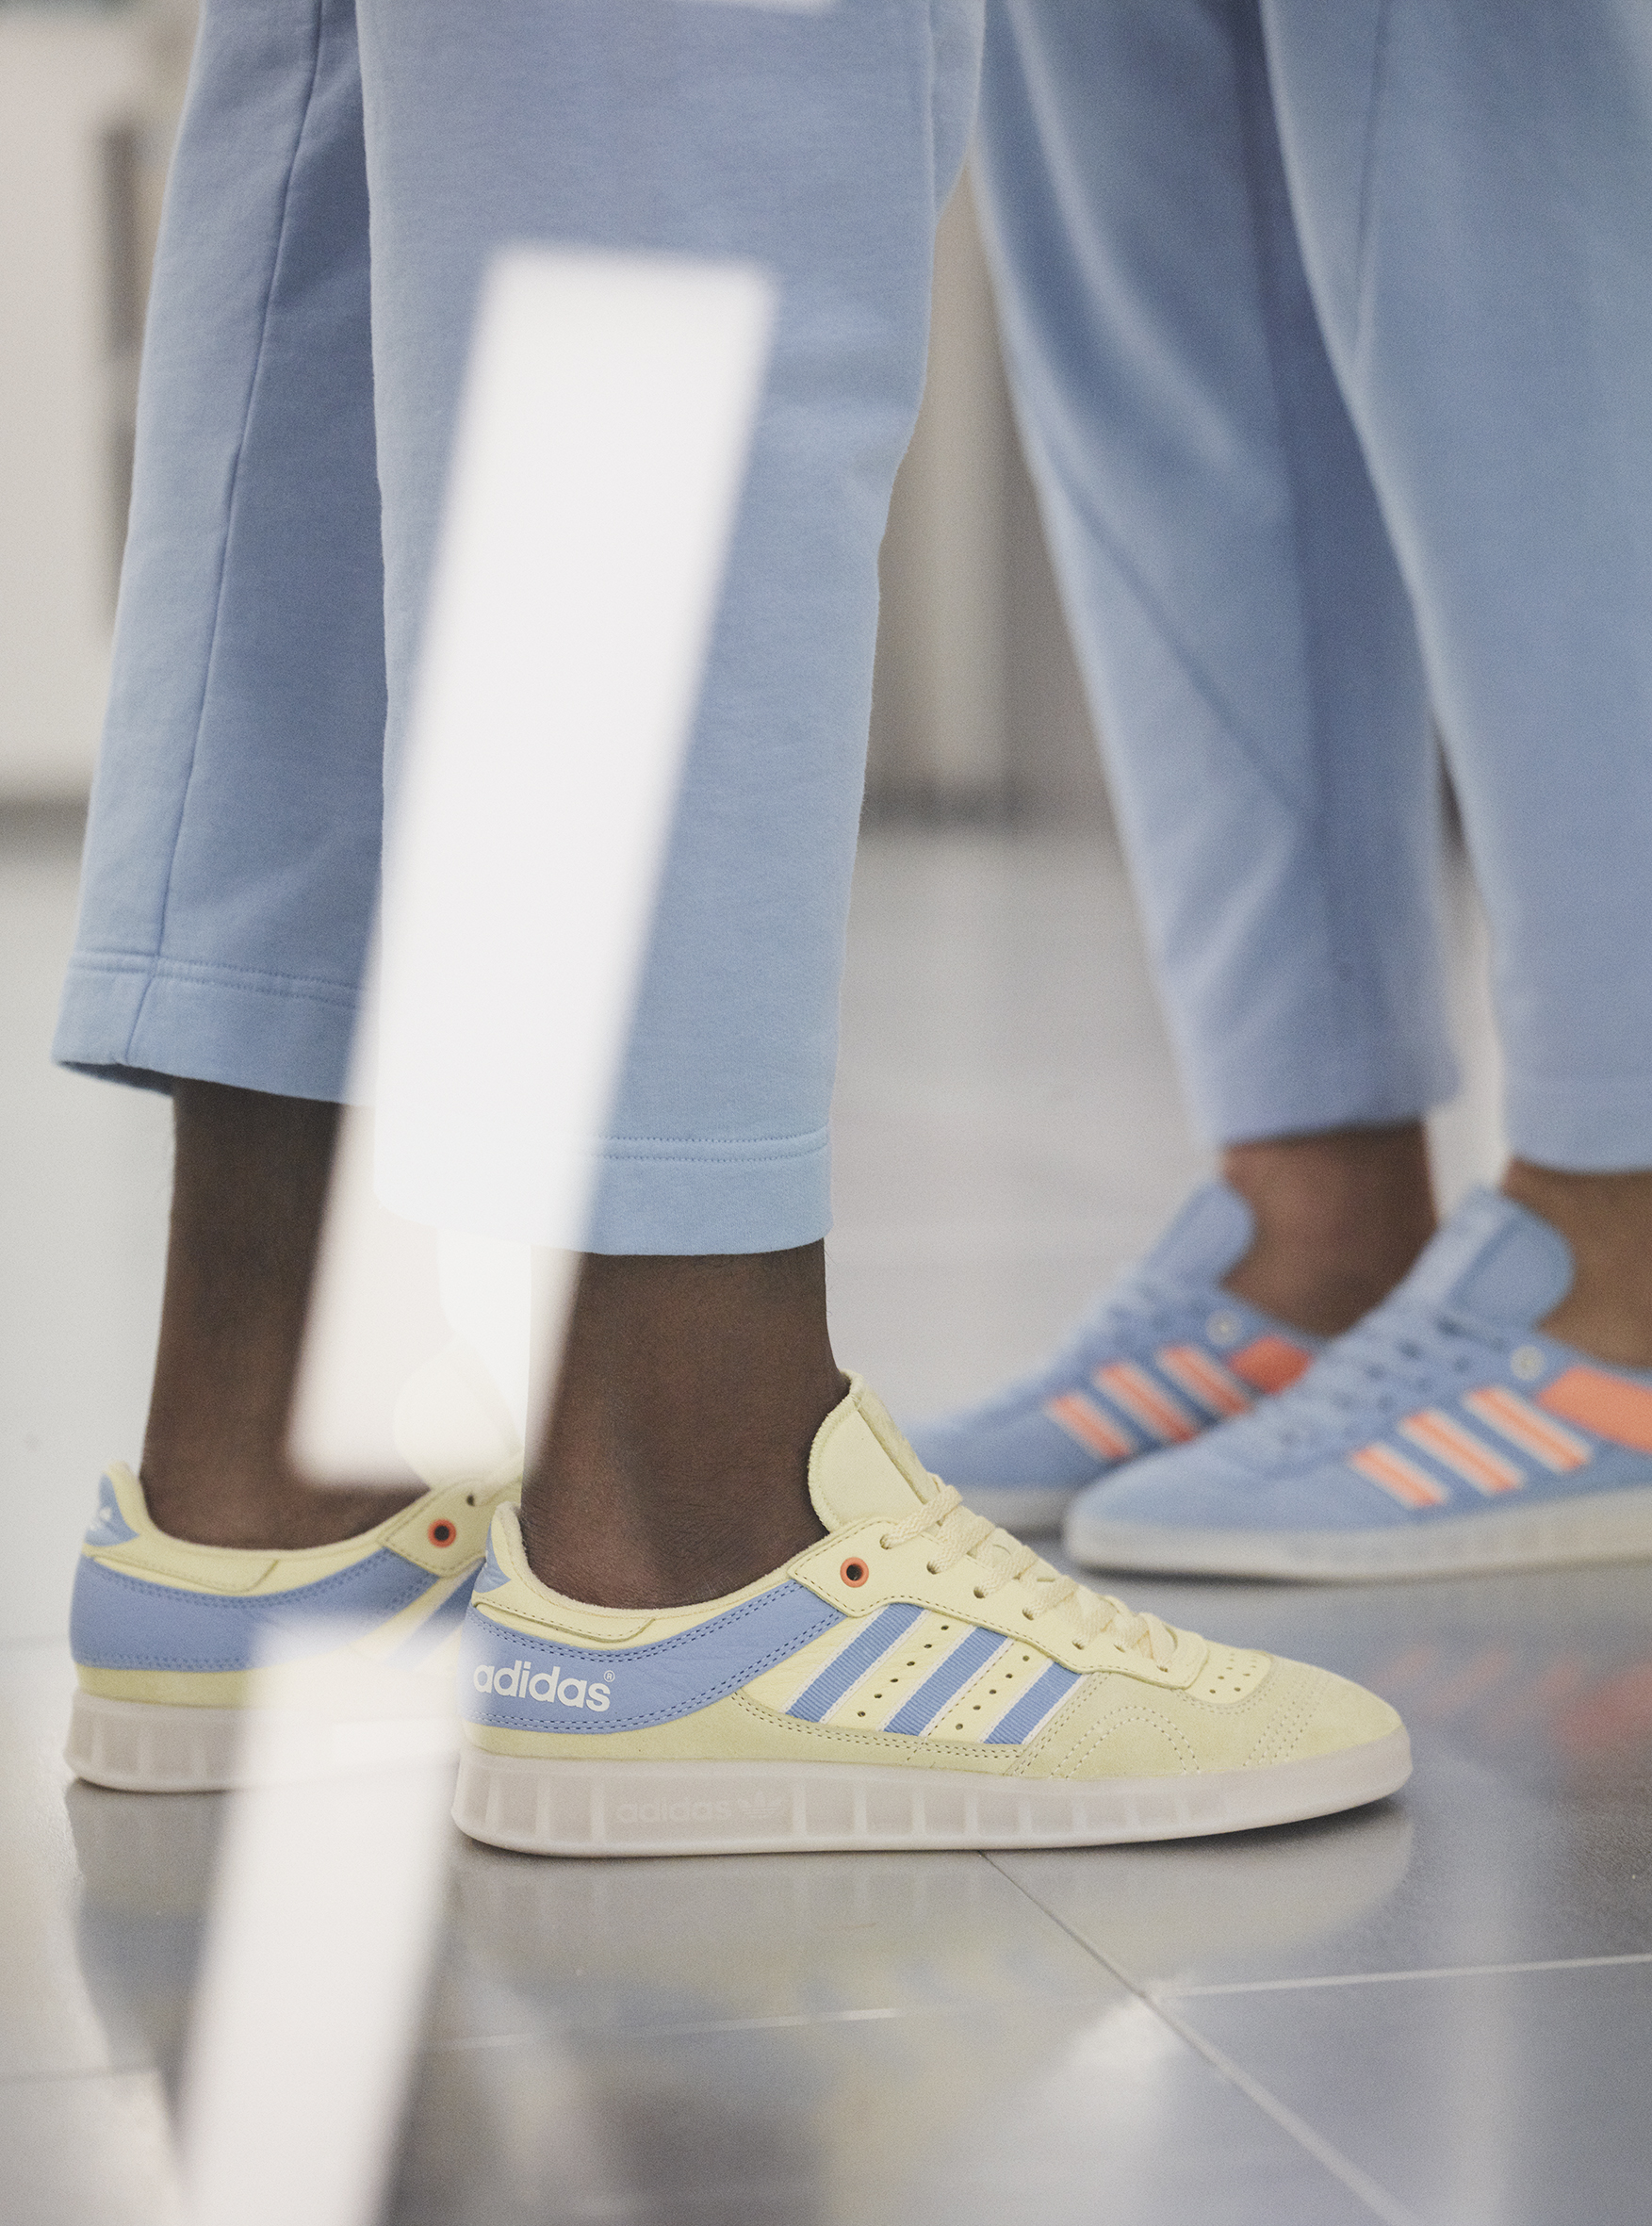 adidas x Oyster Holdings Image 12